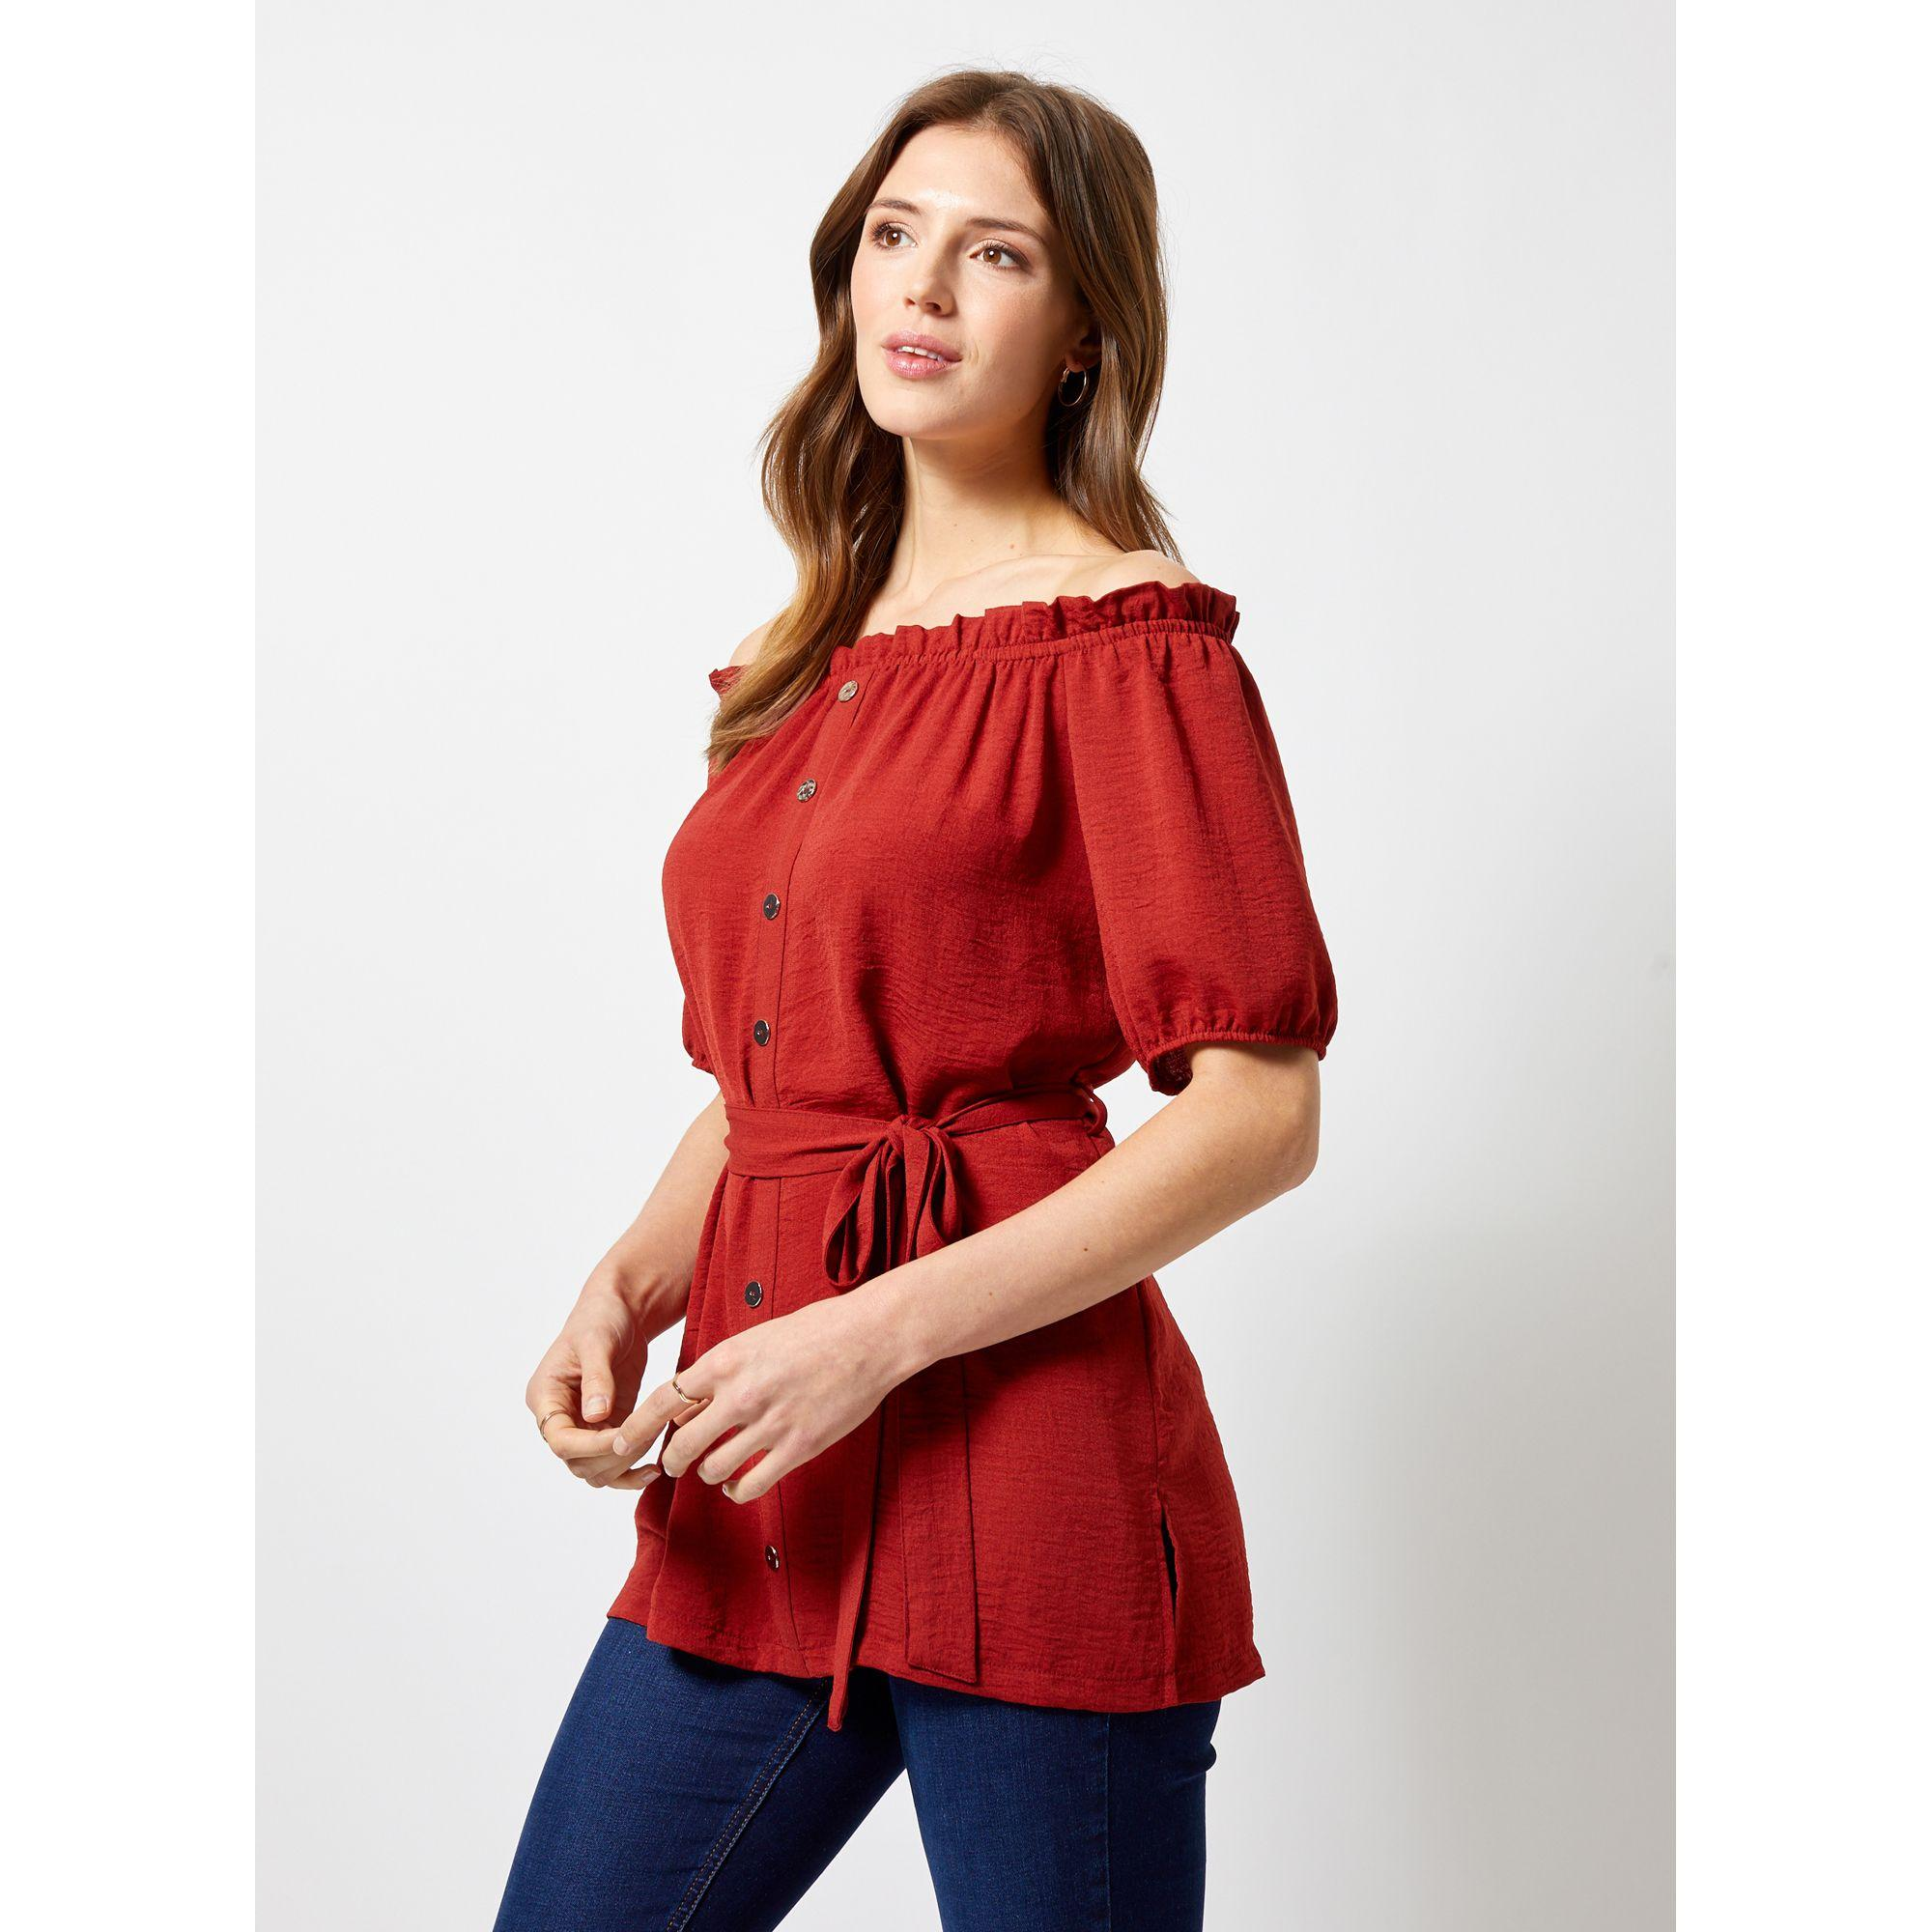 083c9eac95d879 Dorothy Perkins Red Terracotta Longline Bardot Tunic Top in Red - Lyst